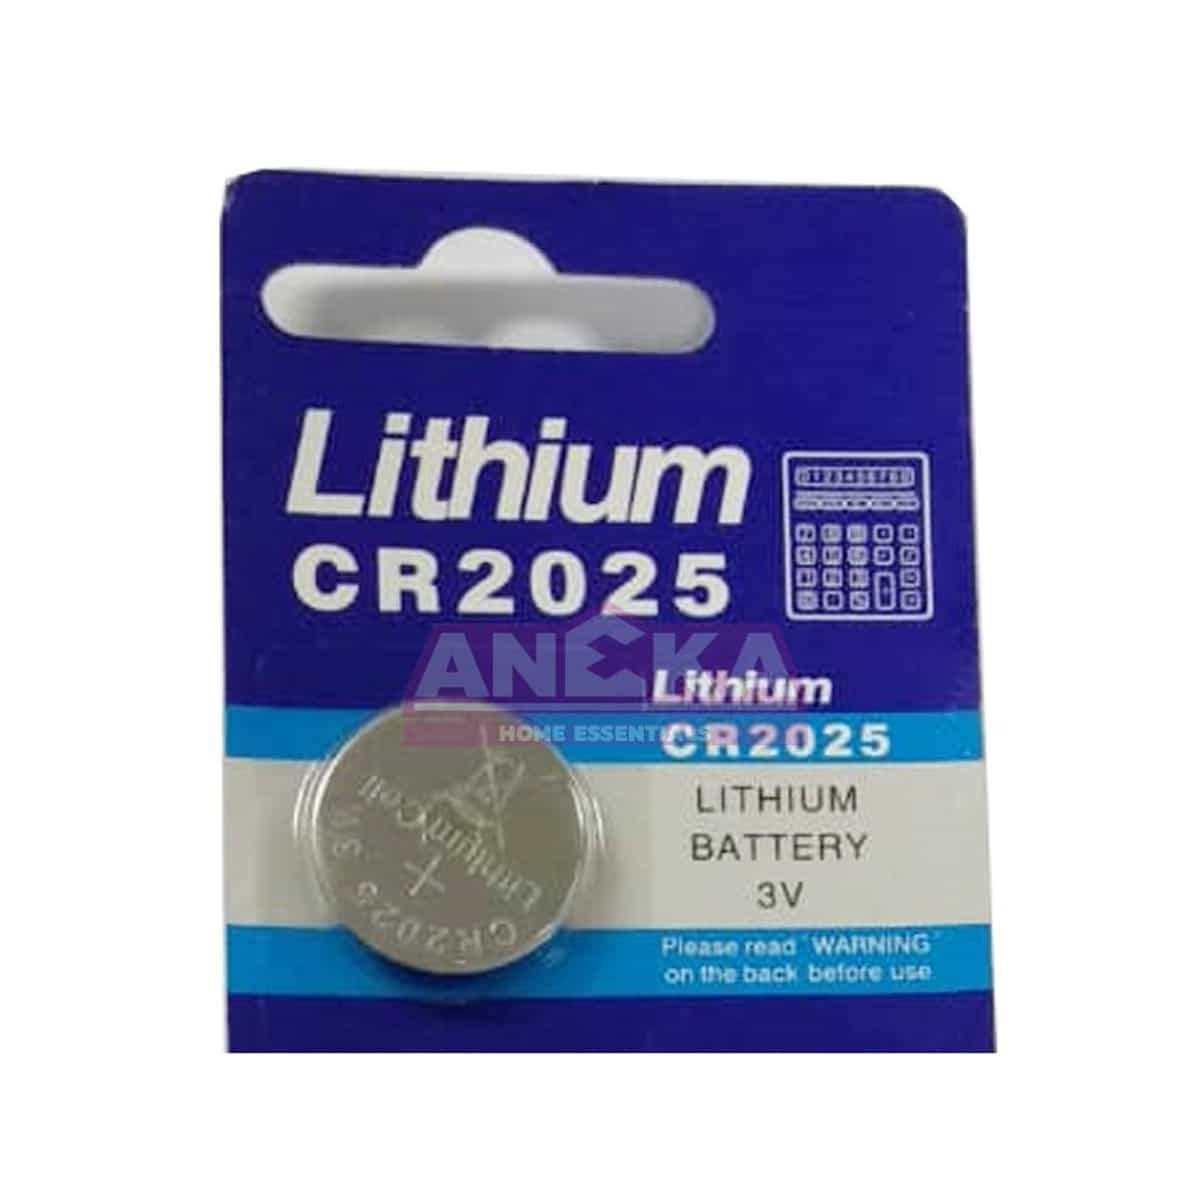 CR2025 - 5 PCS MICRO LITHIUM CELL 3V